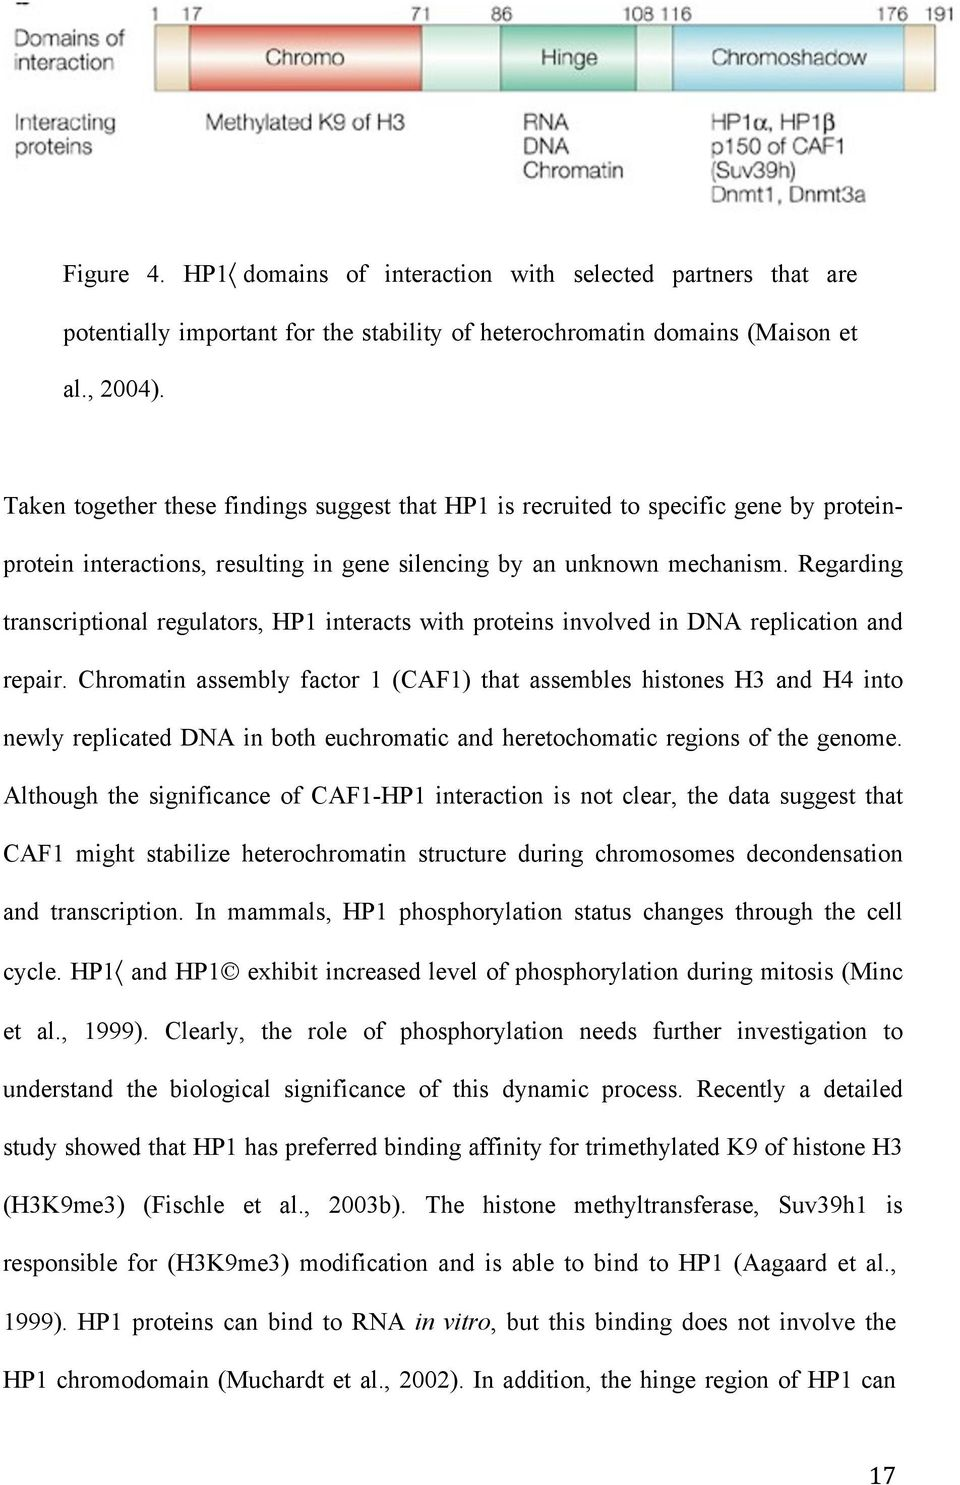 Role Of Asf1 In Histone Deposition During Replication Vivek